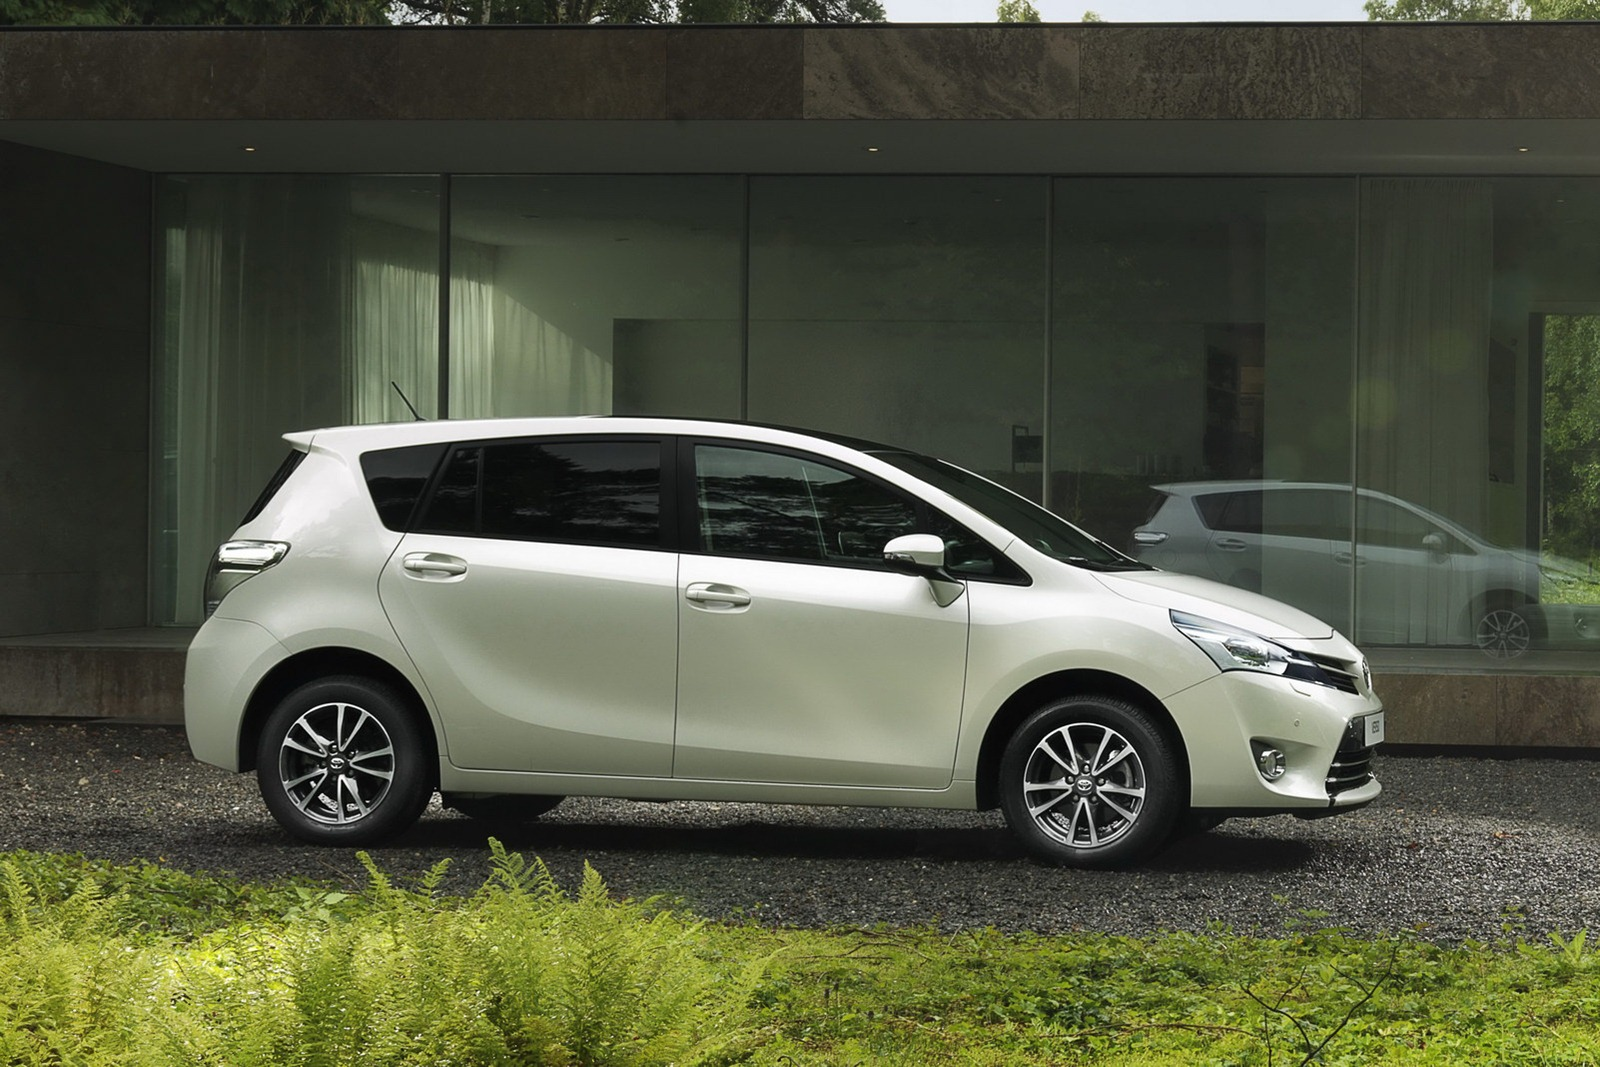 Toyota Verso Mpv Gets A Facelift Photo Gallery on Toyota Corolla Engine